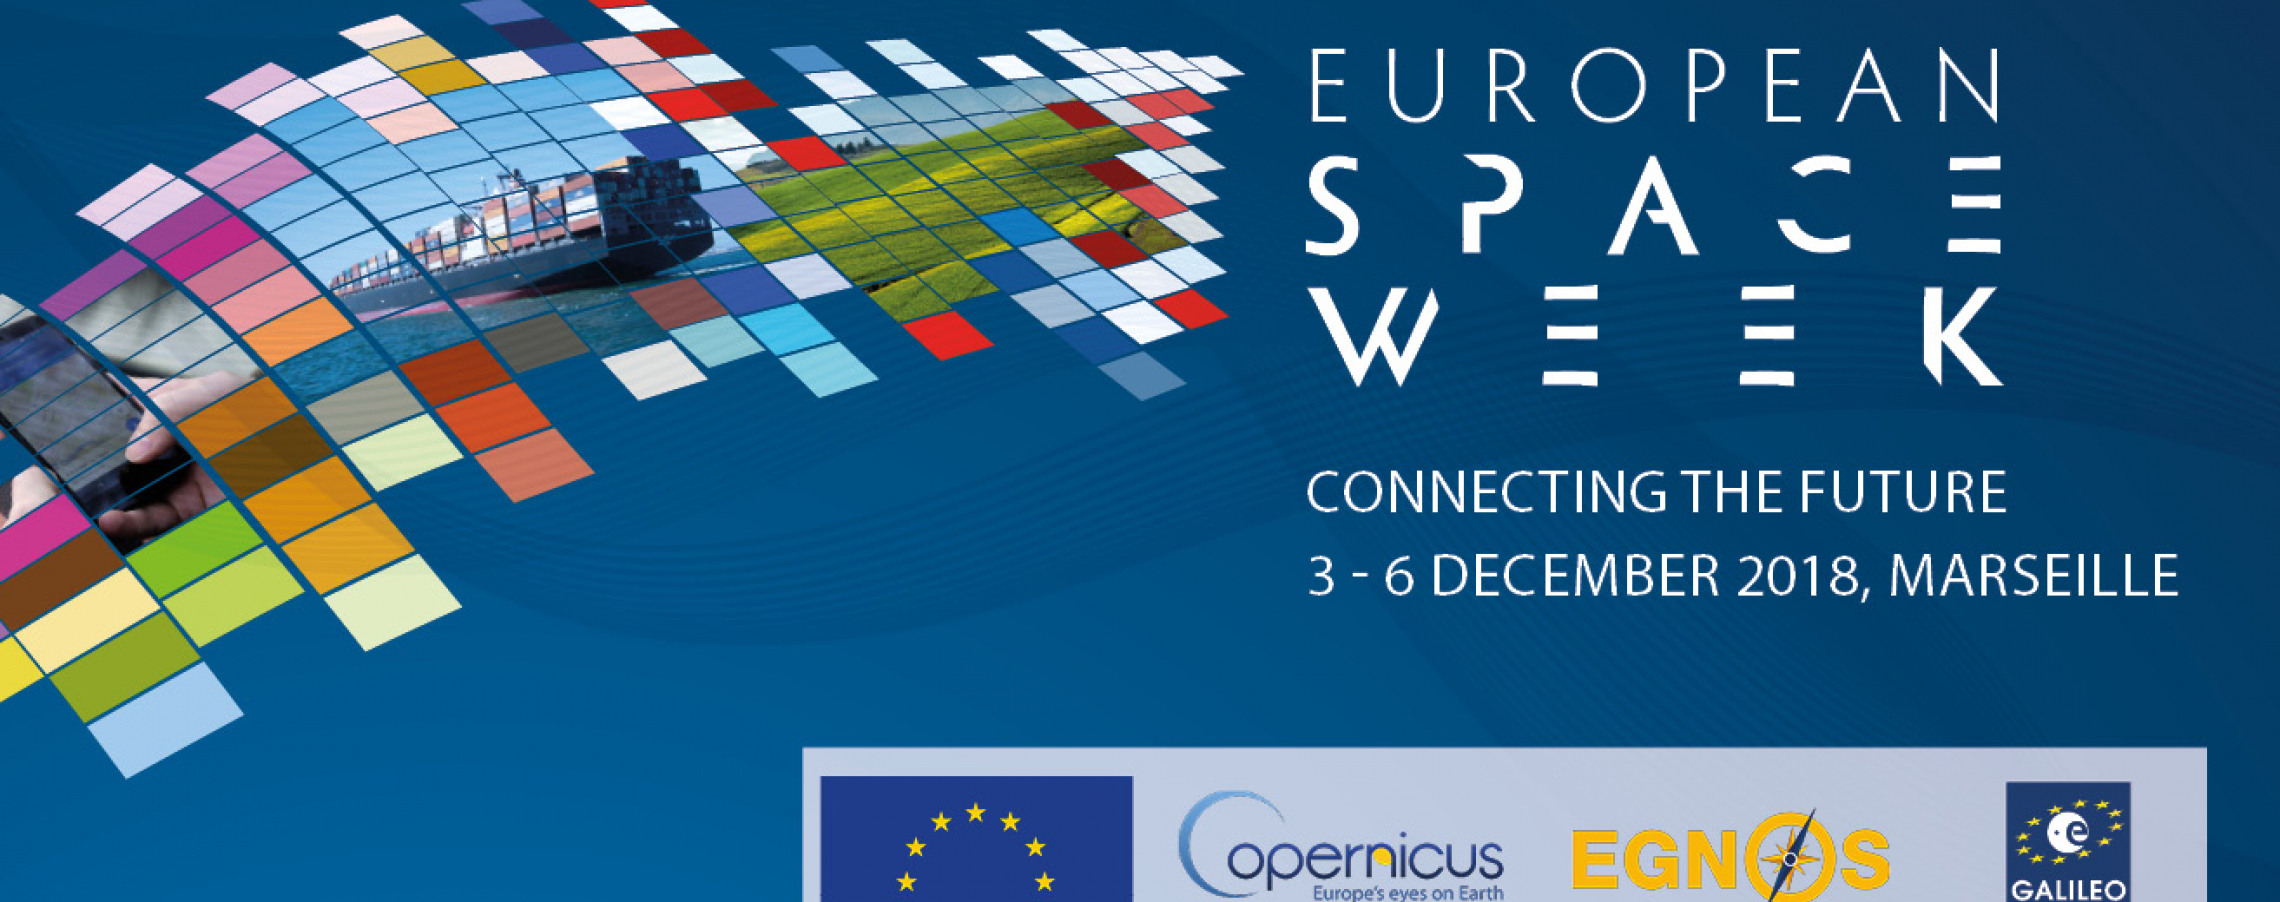 European Space Week is the leading European space conference connecting business, policy-makers, international experts and space application user communities